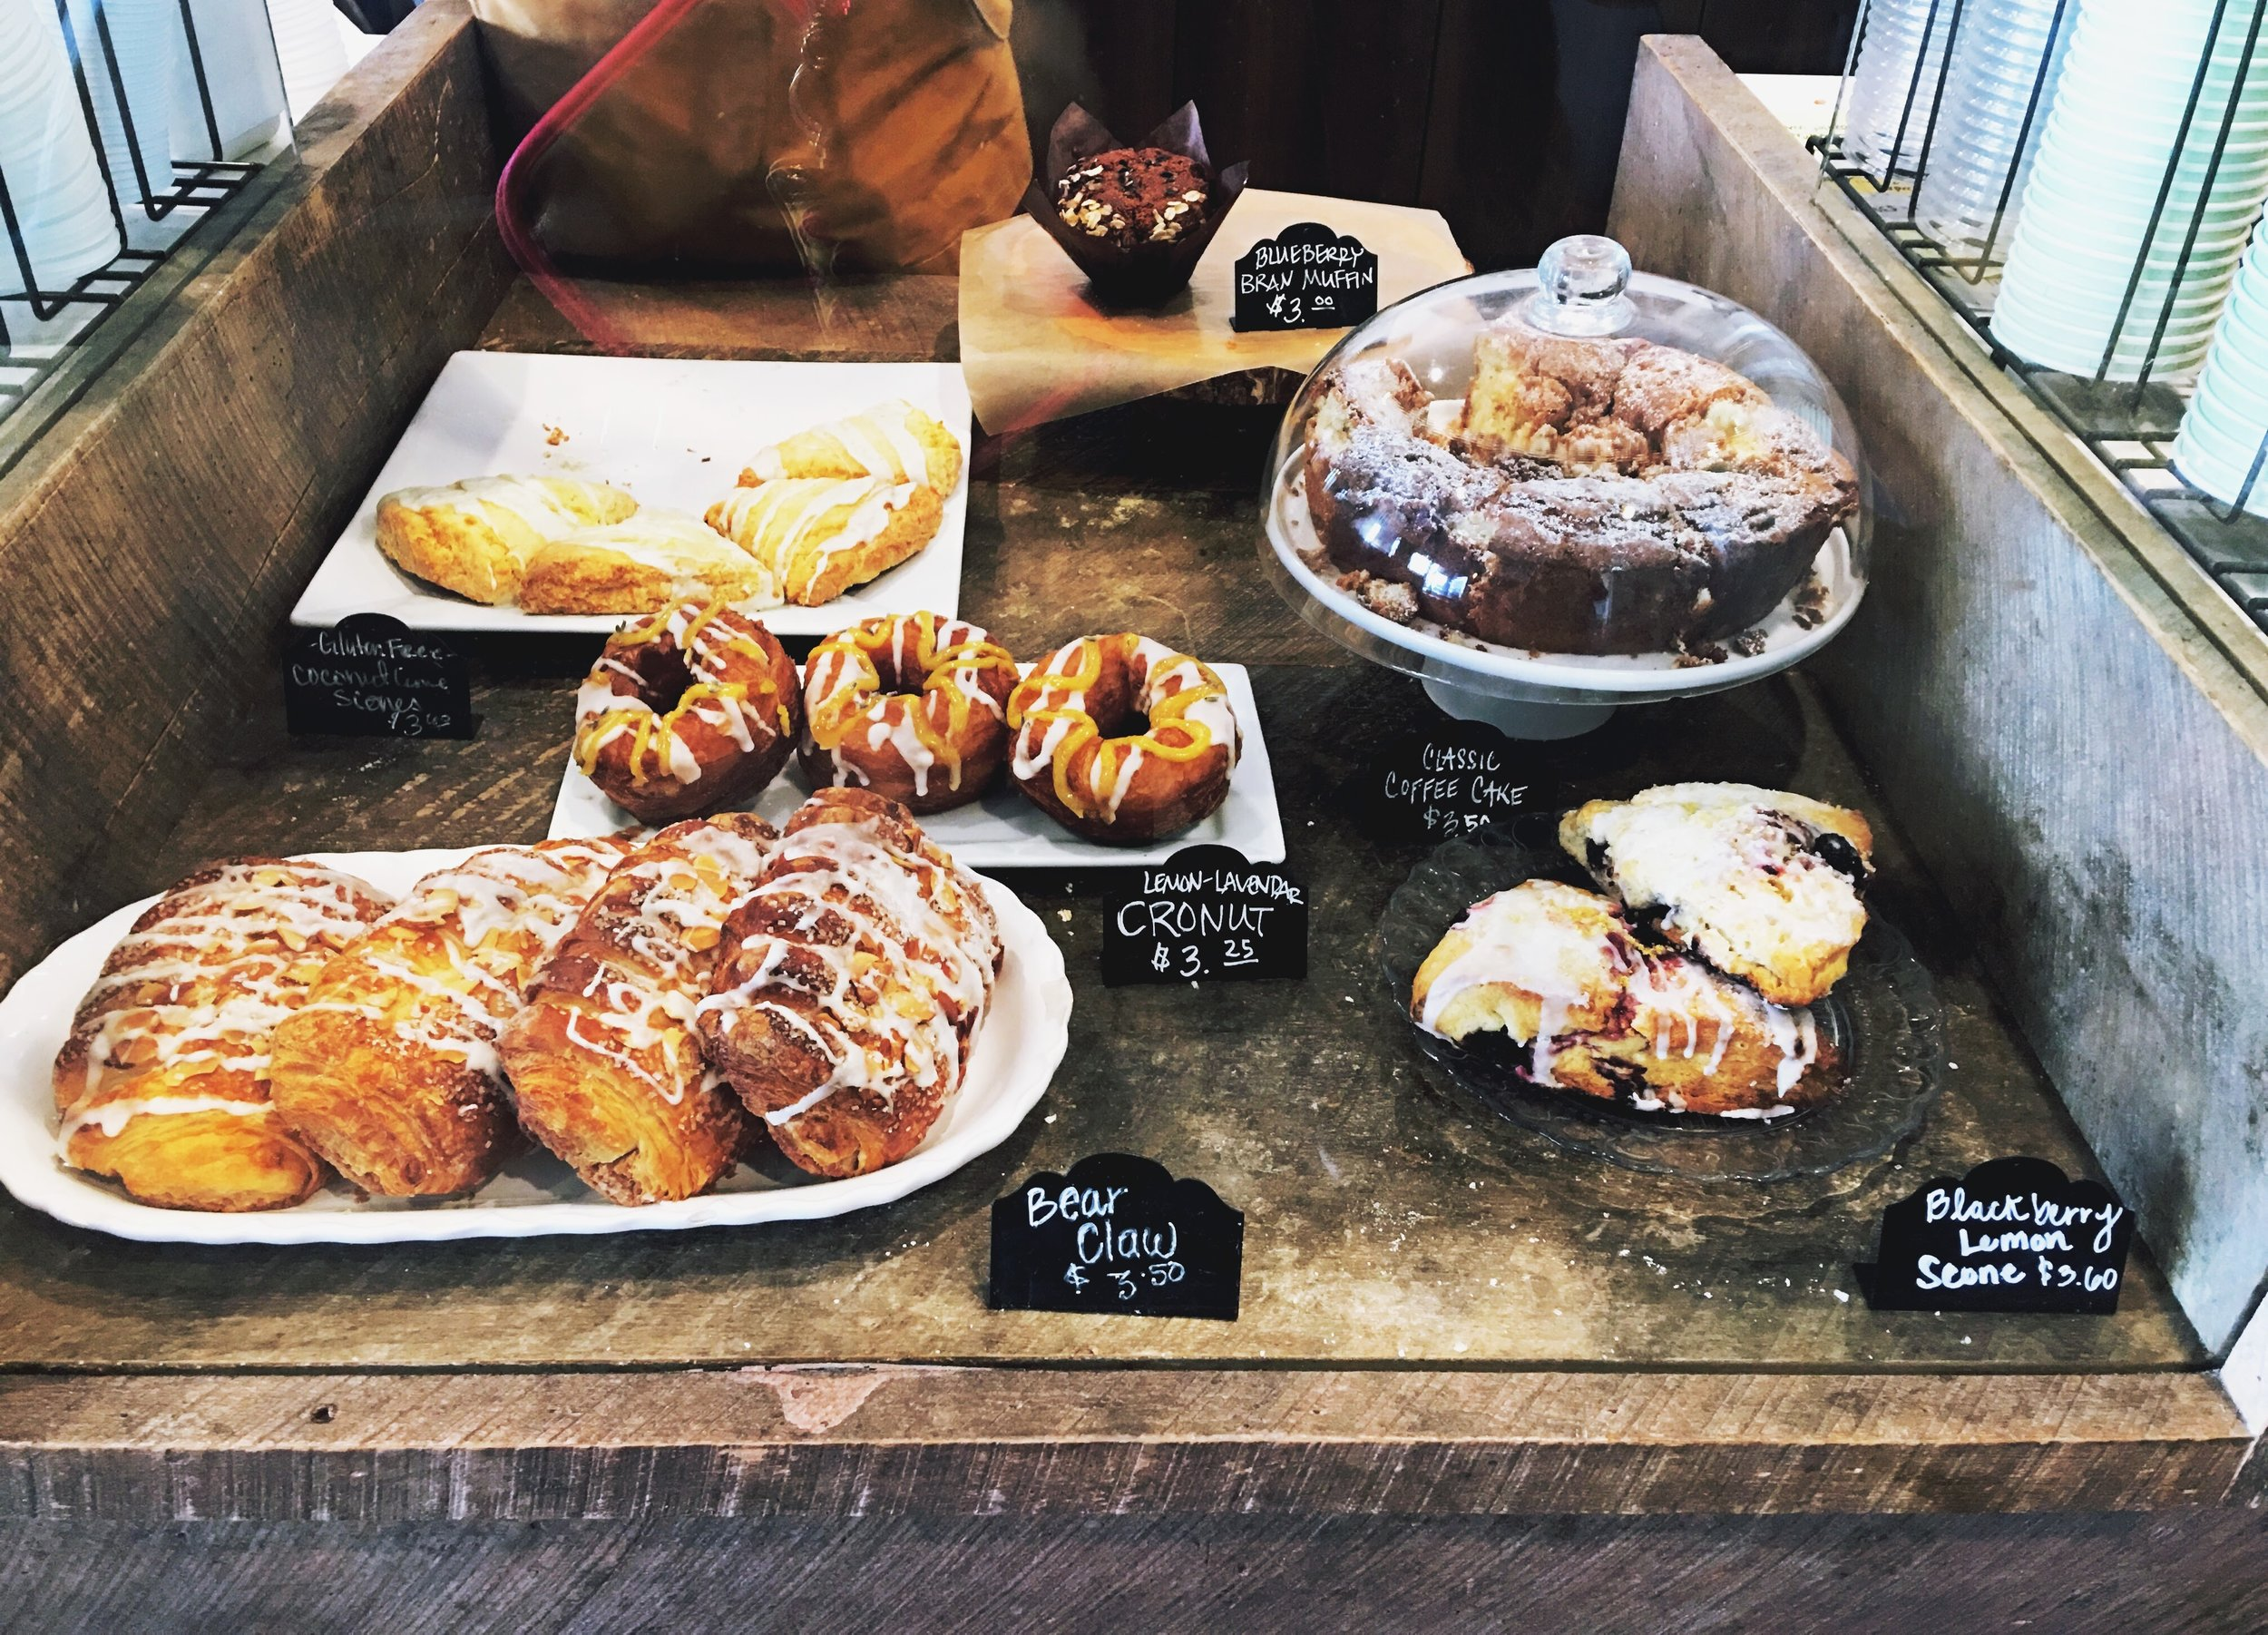 Sweet Treats and Baked Goods from La Mo Cafe